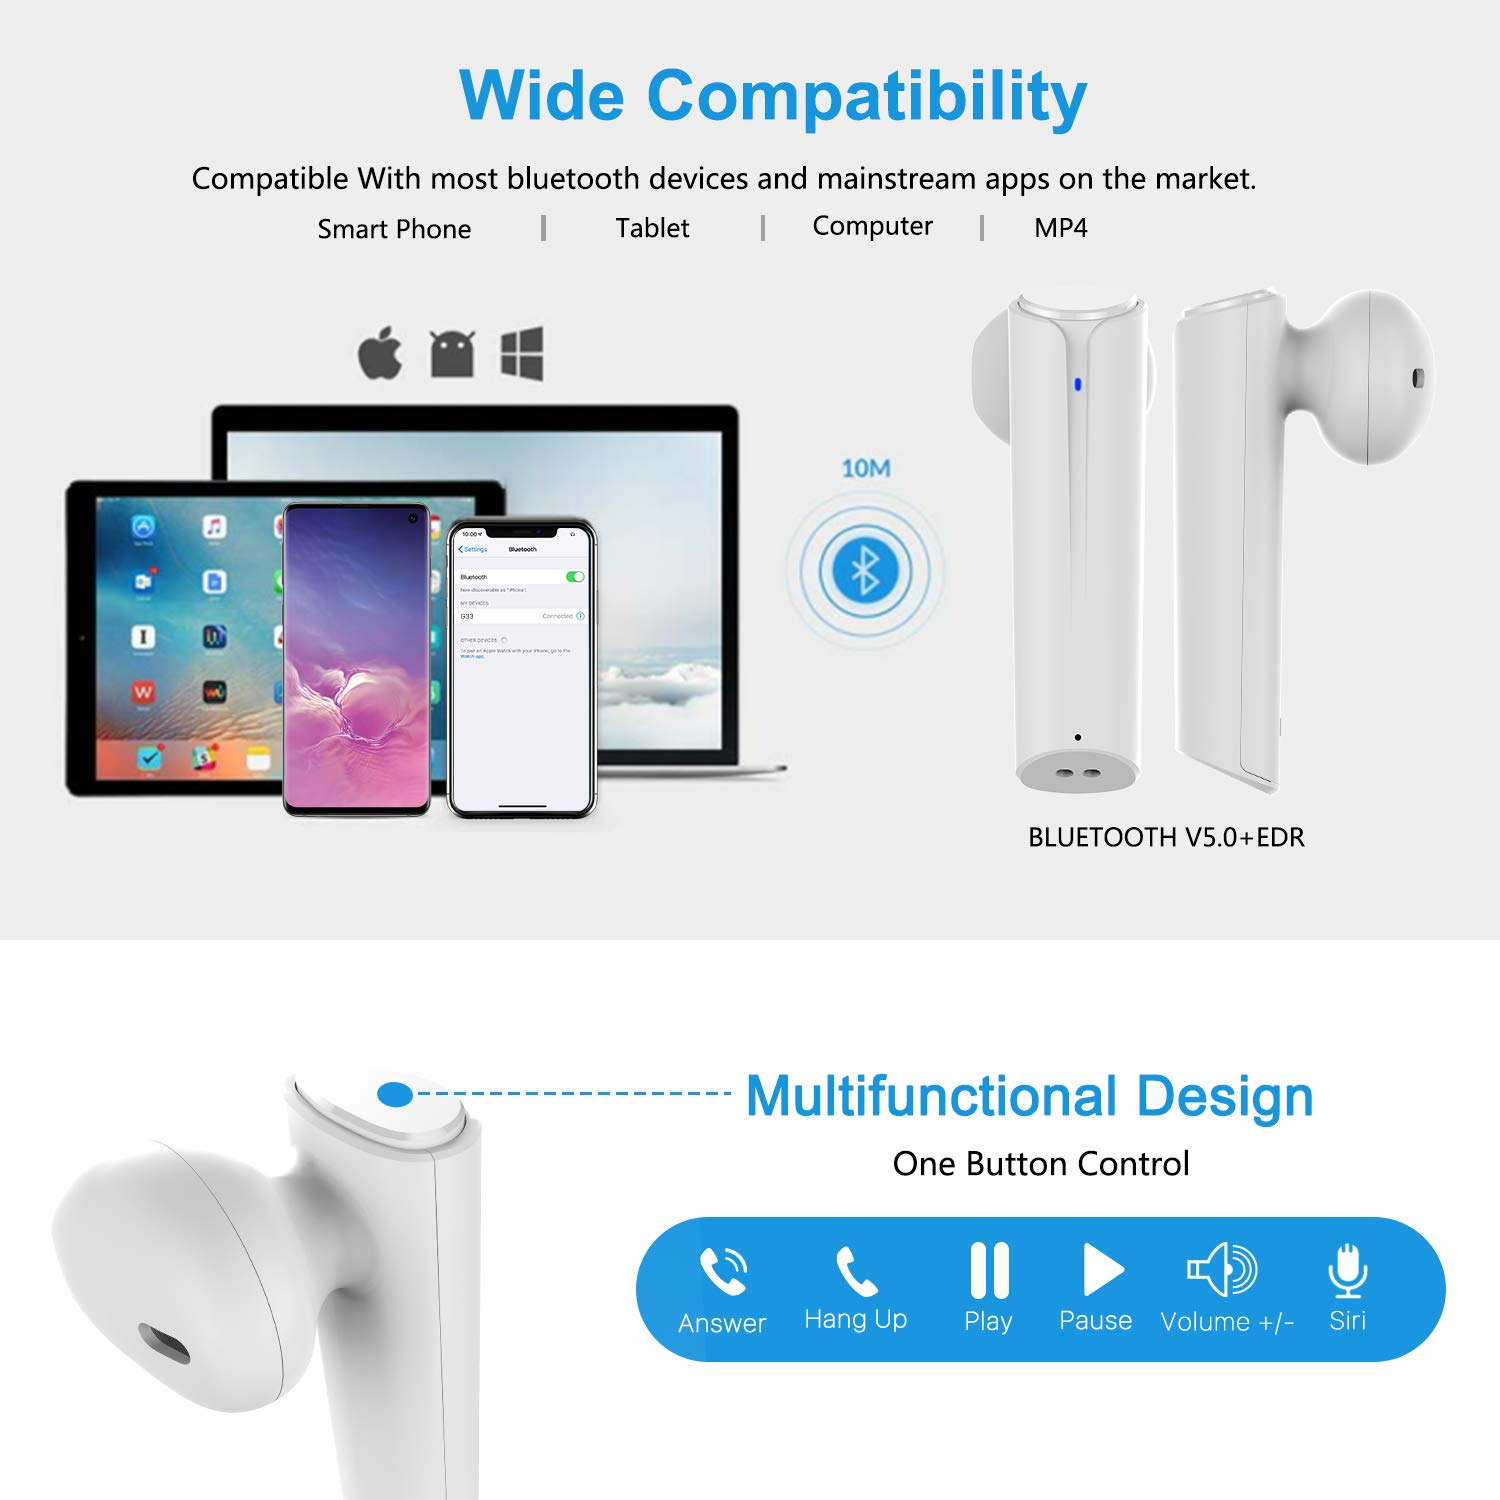 Wireless Earbuds Bluetooth 5.0 Headphones, Cshidworld True Wireless Stereo Earphones with 35Hrs Playback, Hi-fi Sound Bluetooth Headset with Charging Case, One-Step Pairing (White) by Cshidworld (Image #5)